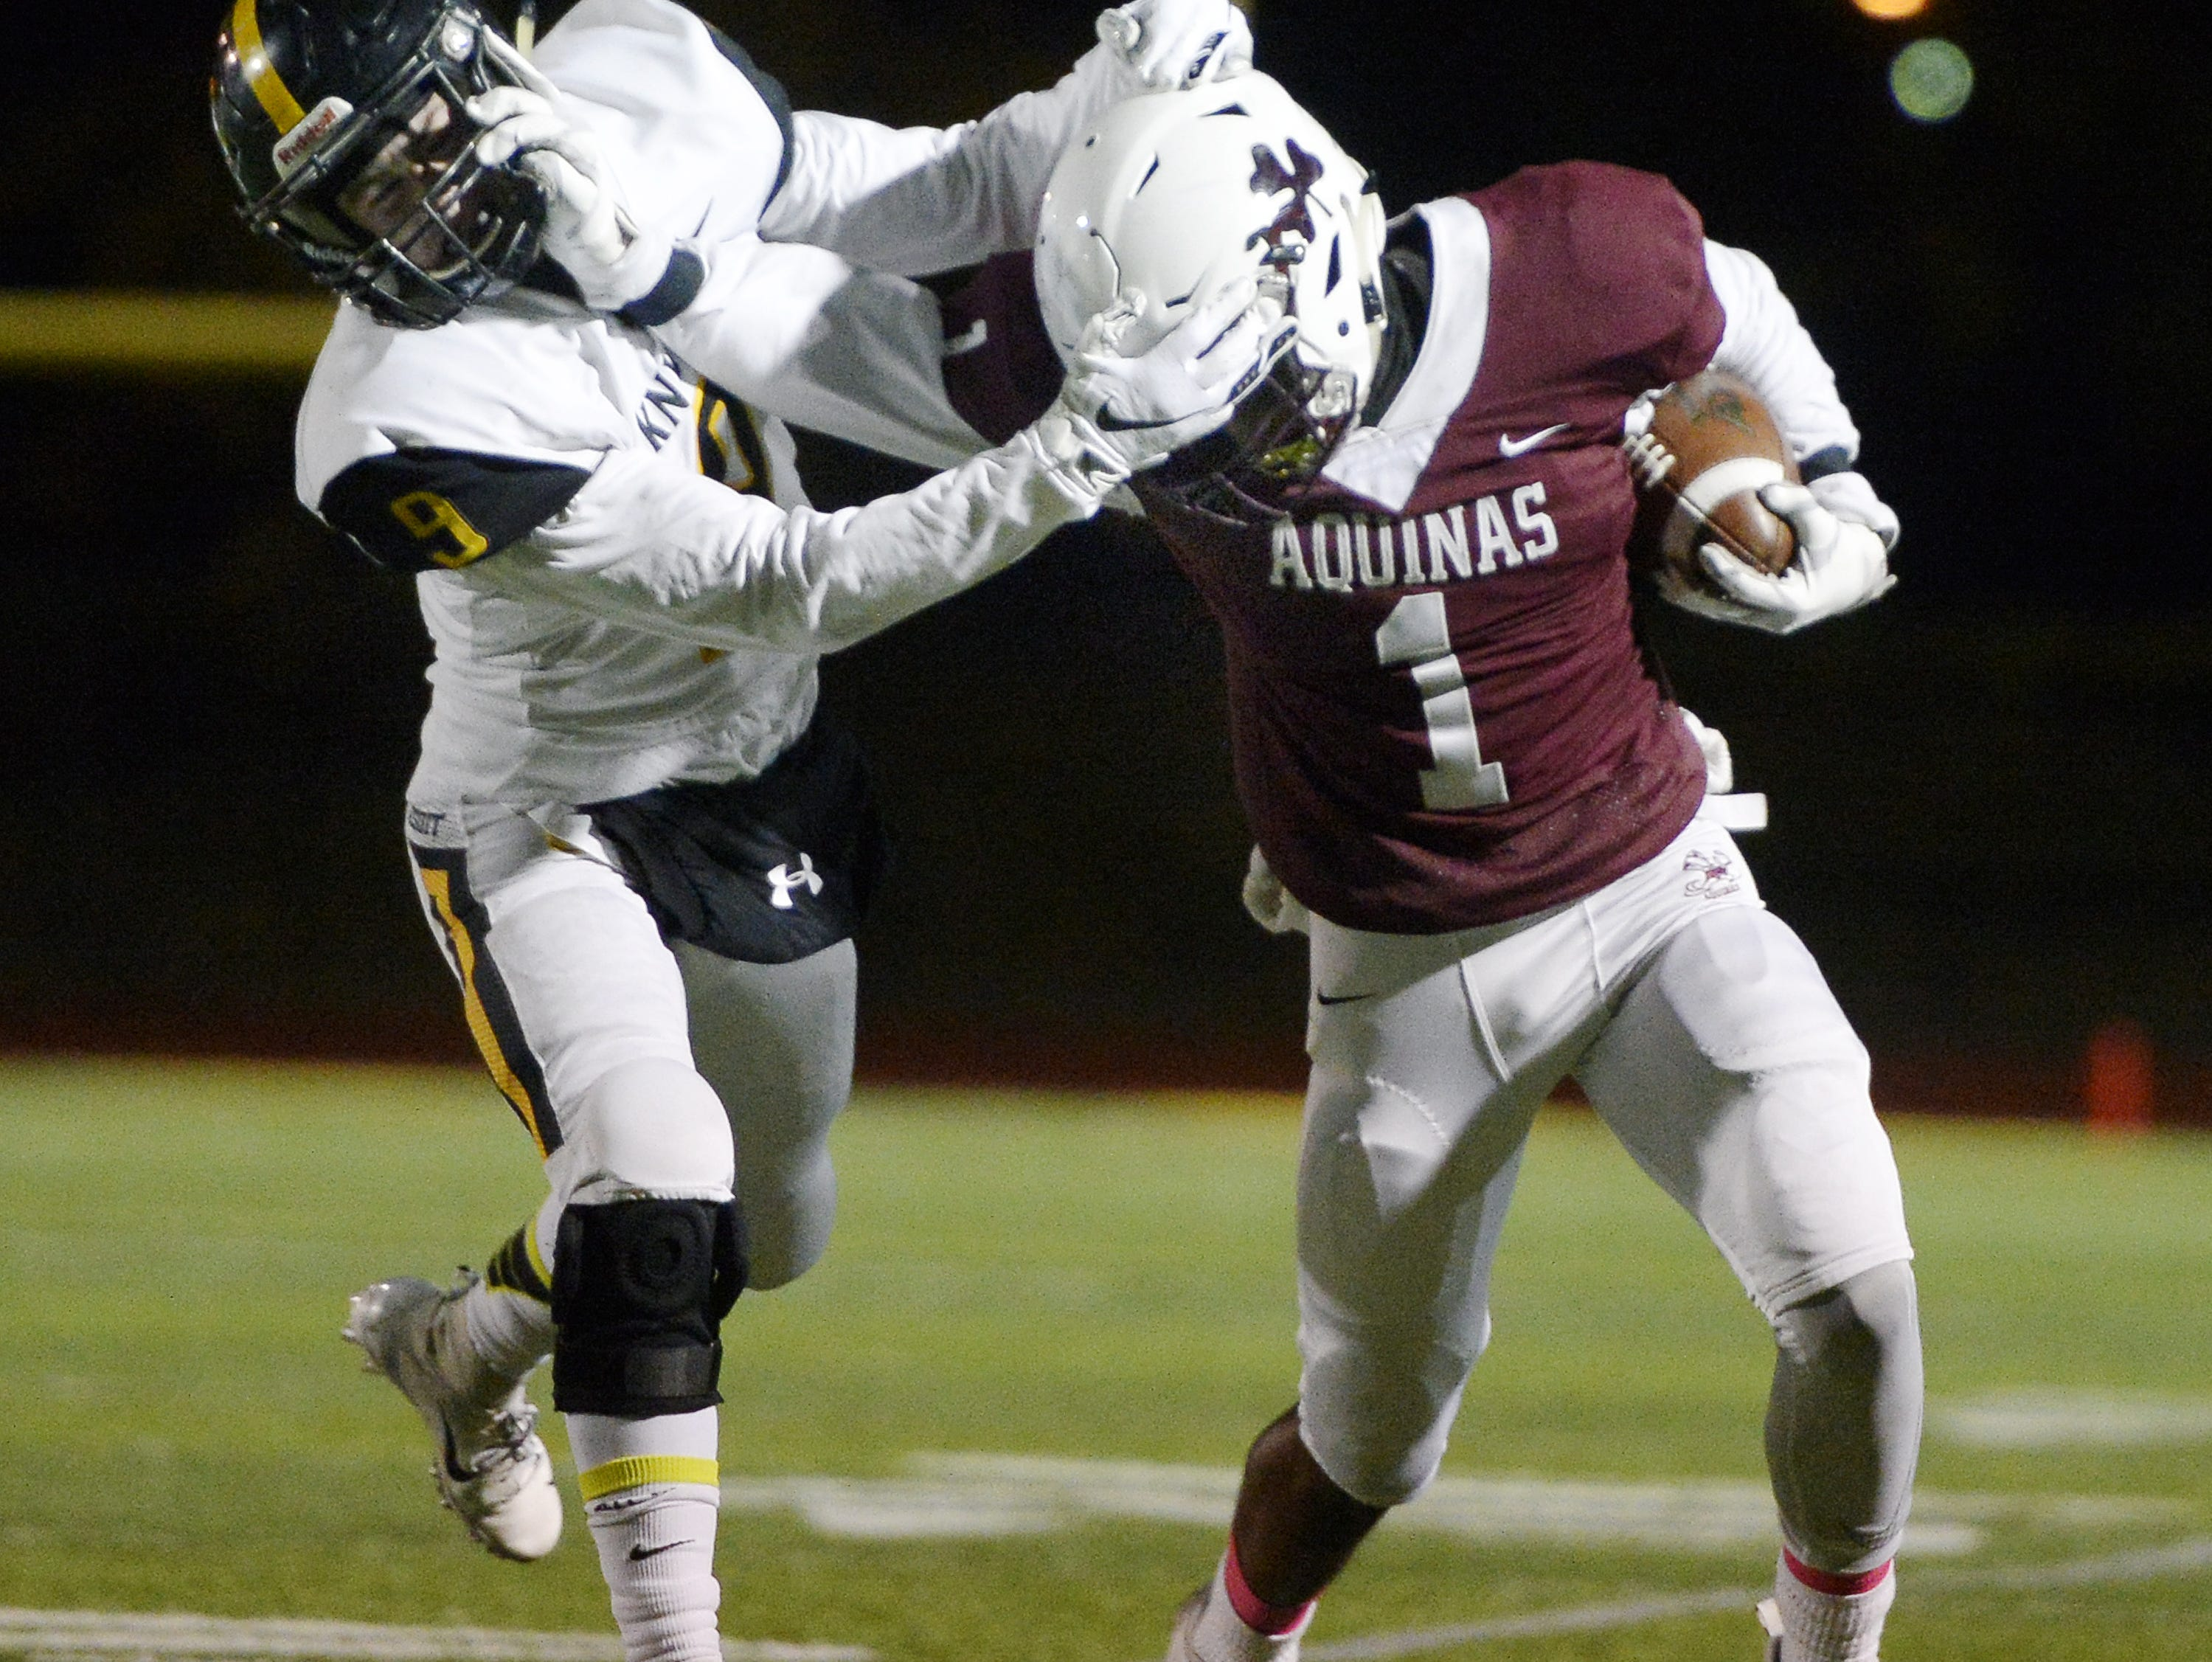 Aquinas' Ulysees Russell, right, tries to break free of McQuaid's Ben Beauchamp during the Section V Class AA championship game at SUNY Brockport, Saturday, Nov. 3, 2018. Aquinas won the Class AA title with a 49-18 win over McQuaid.